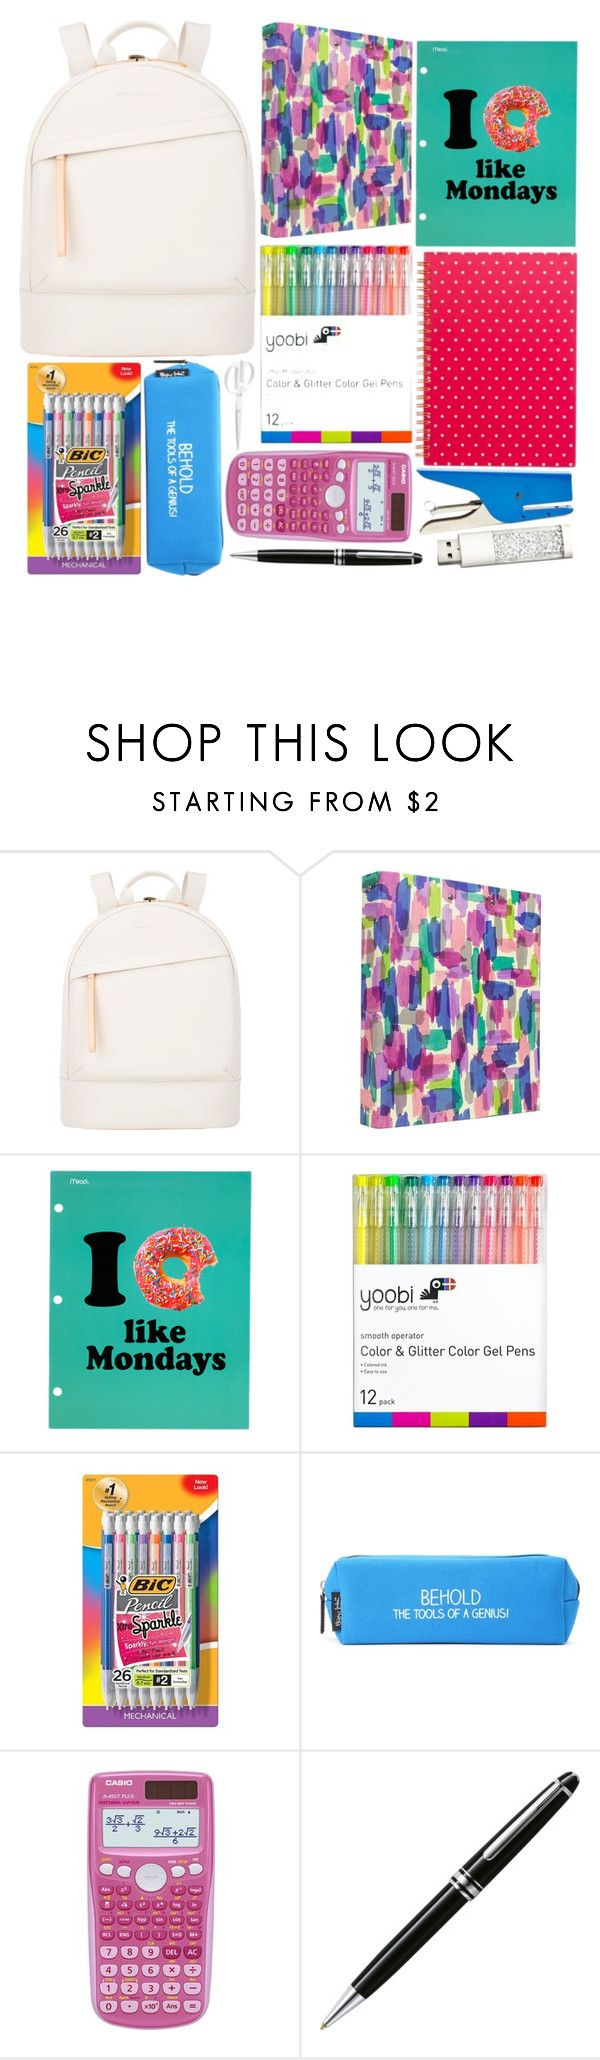 """Back to School Supplies"" by prettyorchid22 ❤ liked on Polyvore featuring interior, interiors, interior design, home, home decor, interior decorating, Want Les Essentiels de la Vie, Mead, Yoobi and BIC"